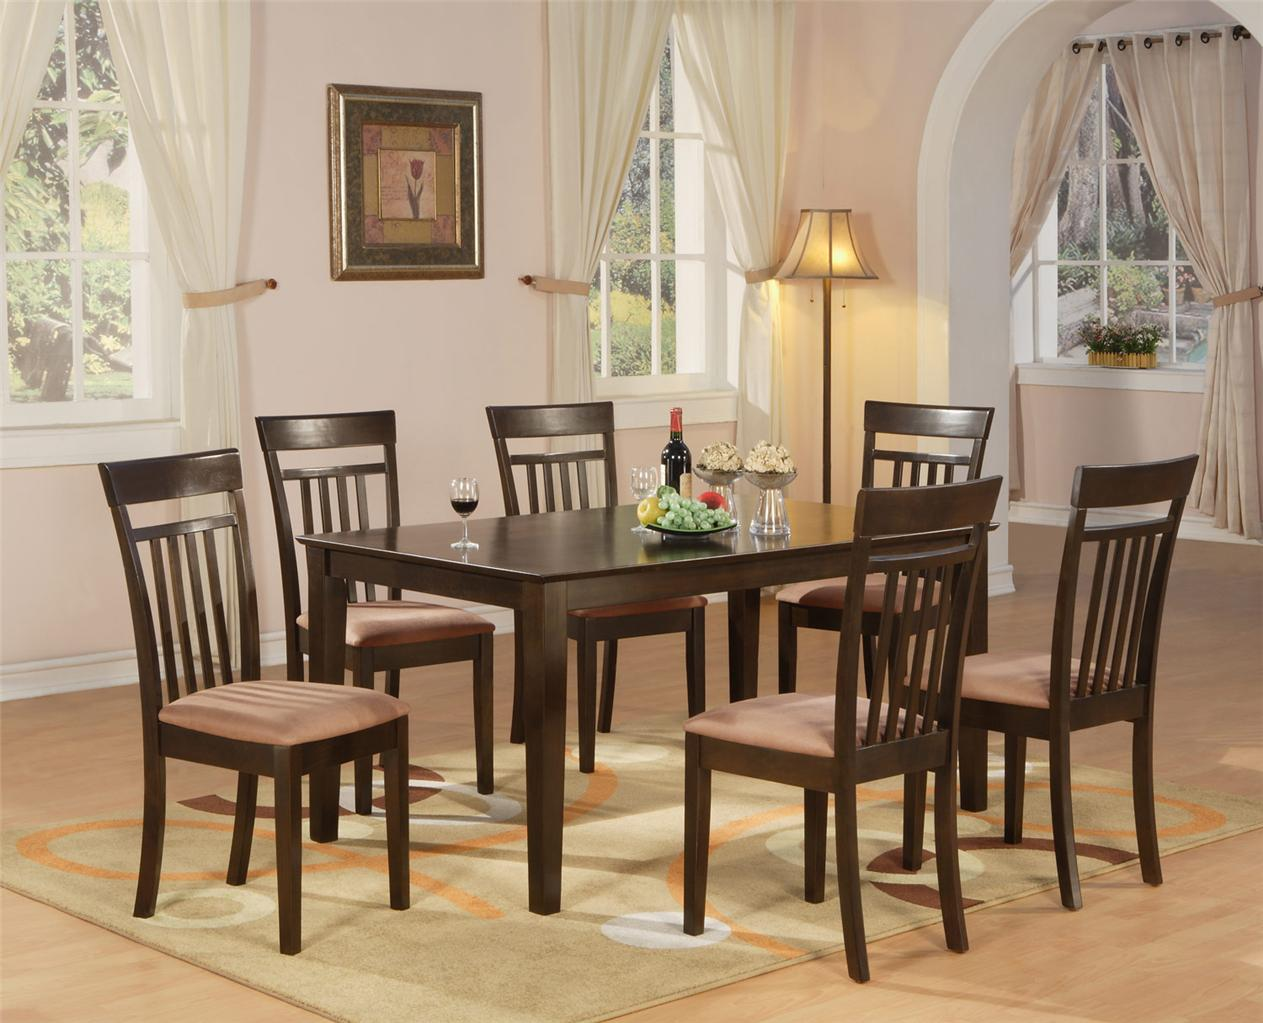 7 PC DINING ROOM DINETTE KITCHEN SET TABLE AND 6 CHAIRS eBay : 537537257o from www.ebay.com size 1263 x 1023 jpeg 145kB